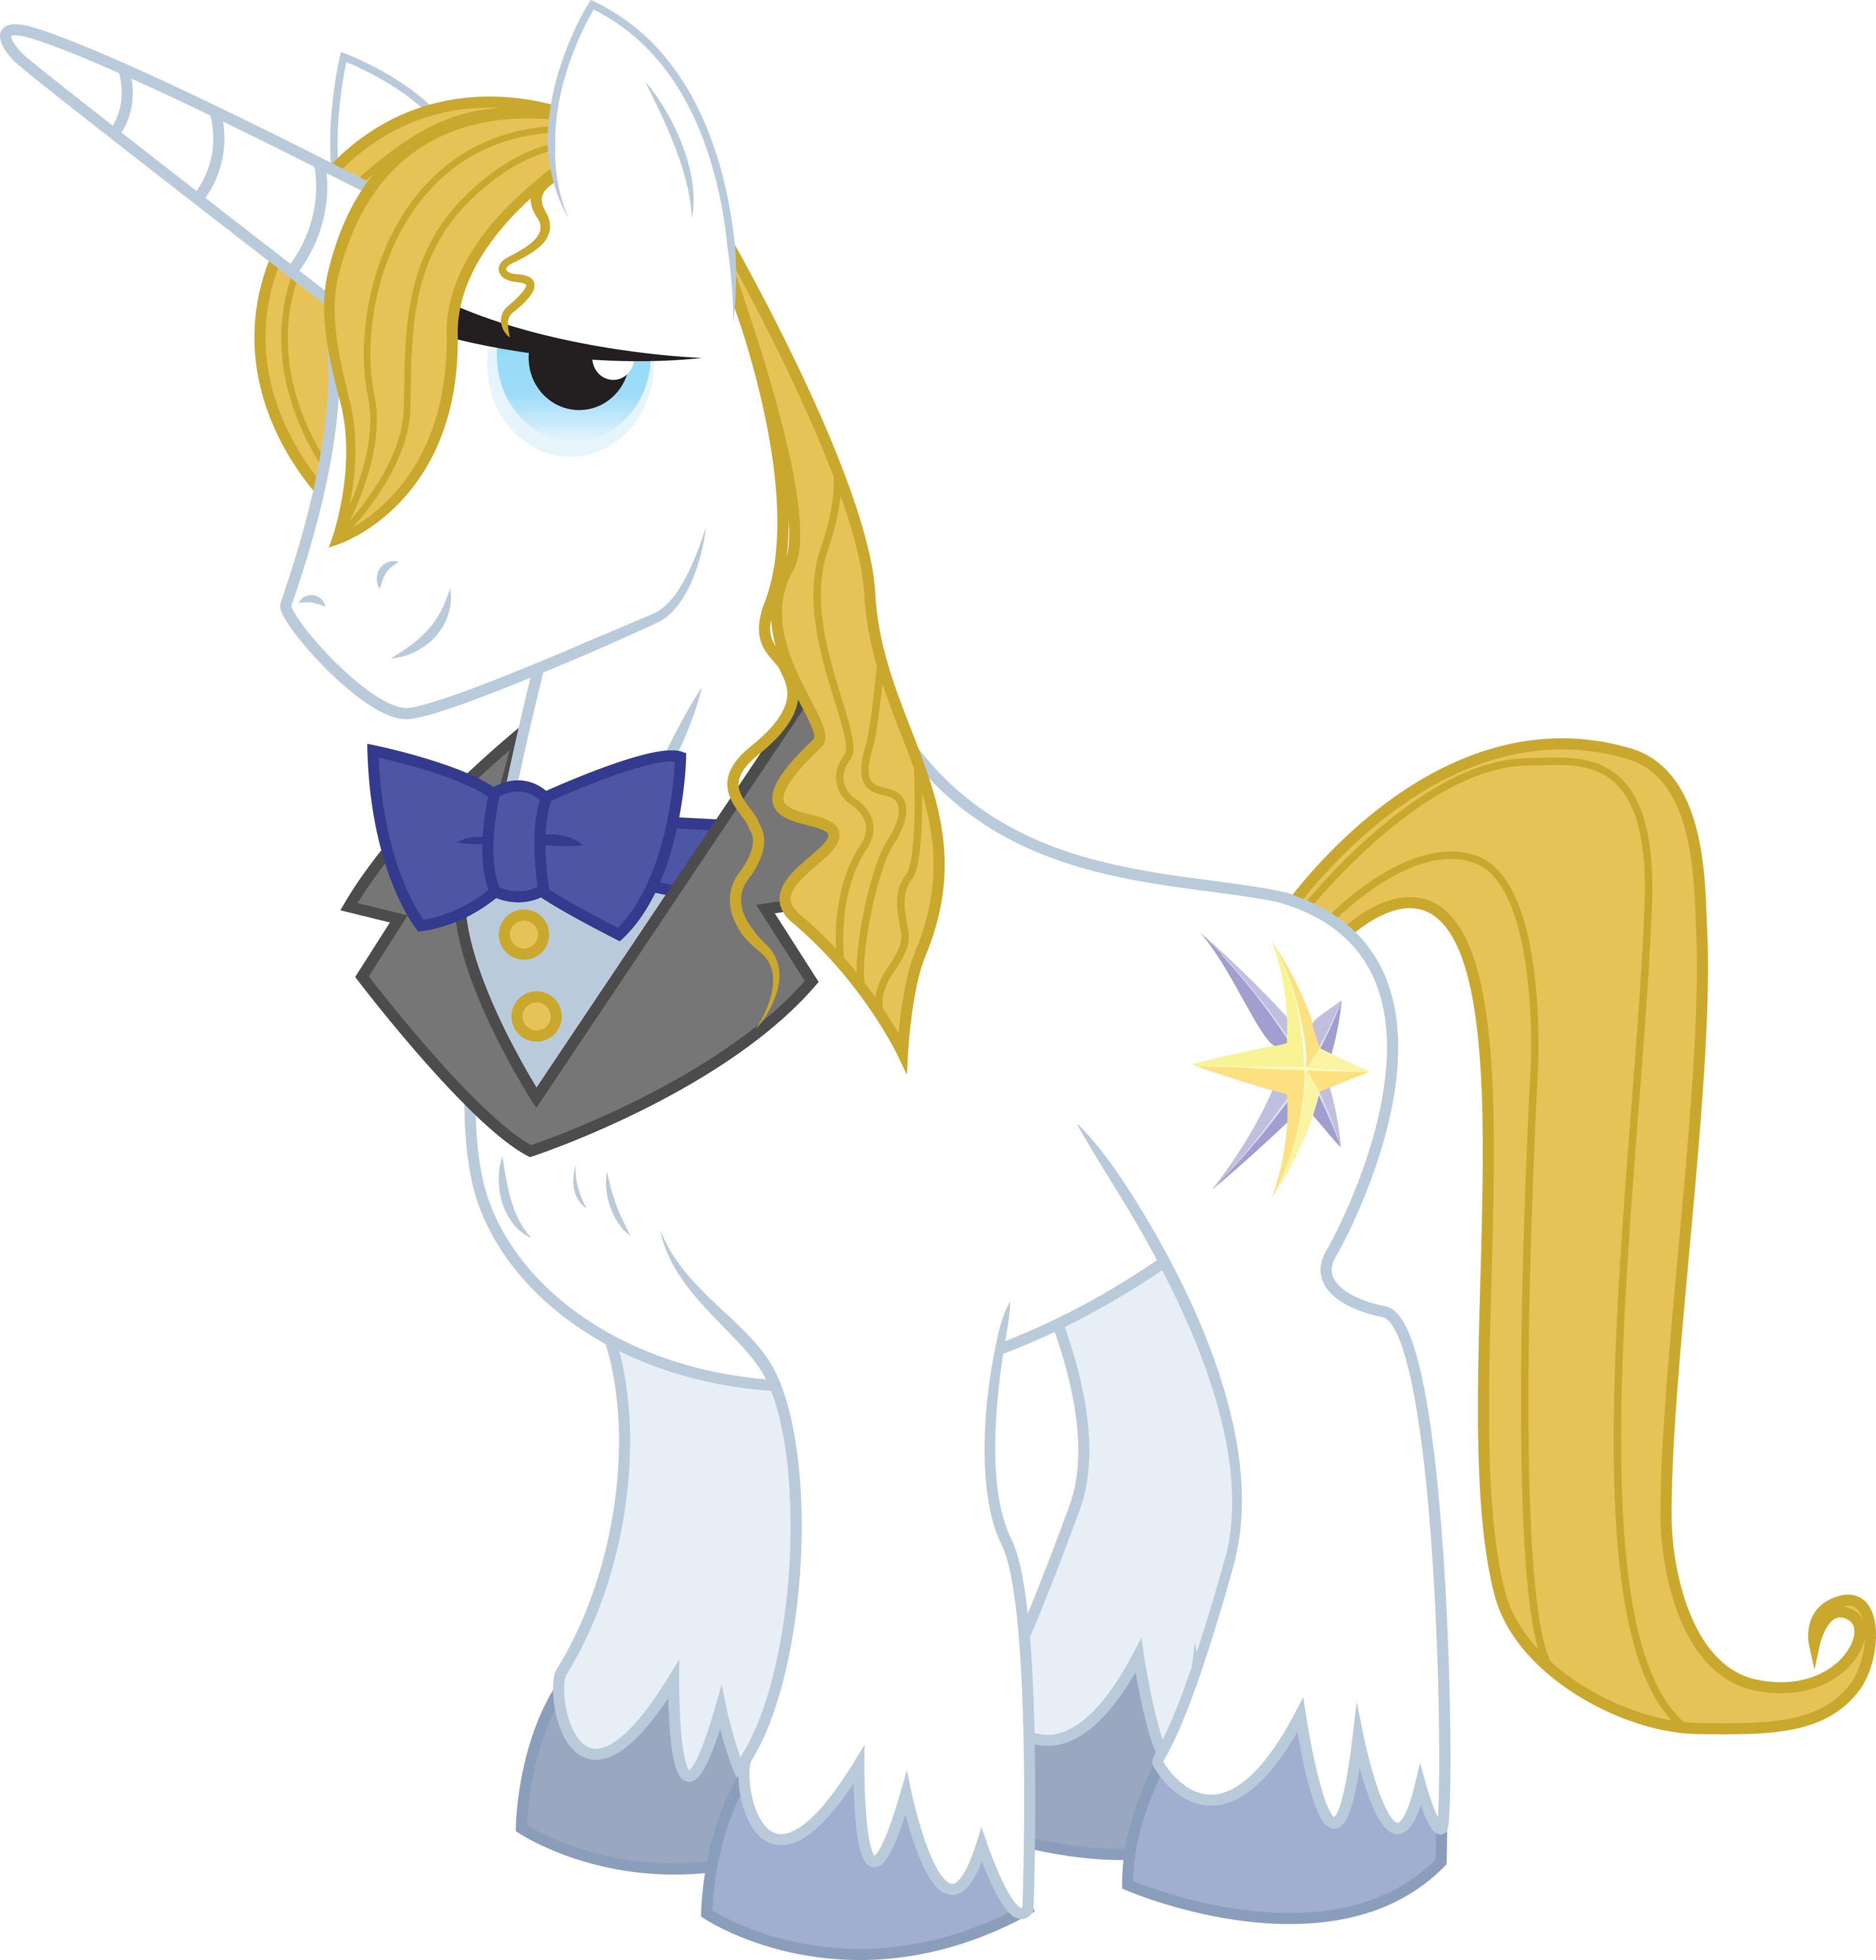 http://img2.wikia.nocookie.net/__cb20140112090631/mlp-gameloft/images/c/c0/Prince_Blueblood_vector.png